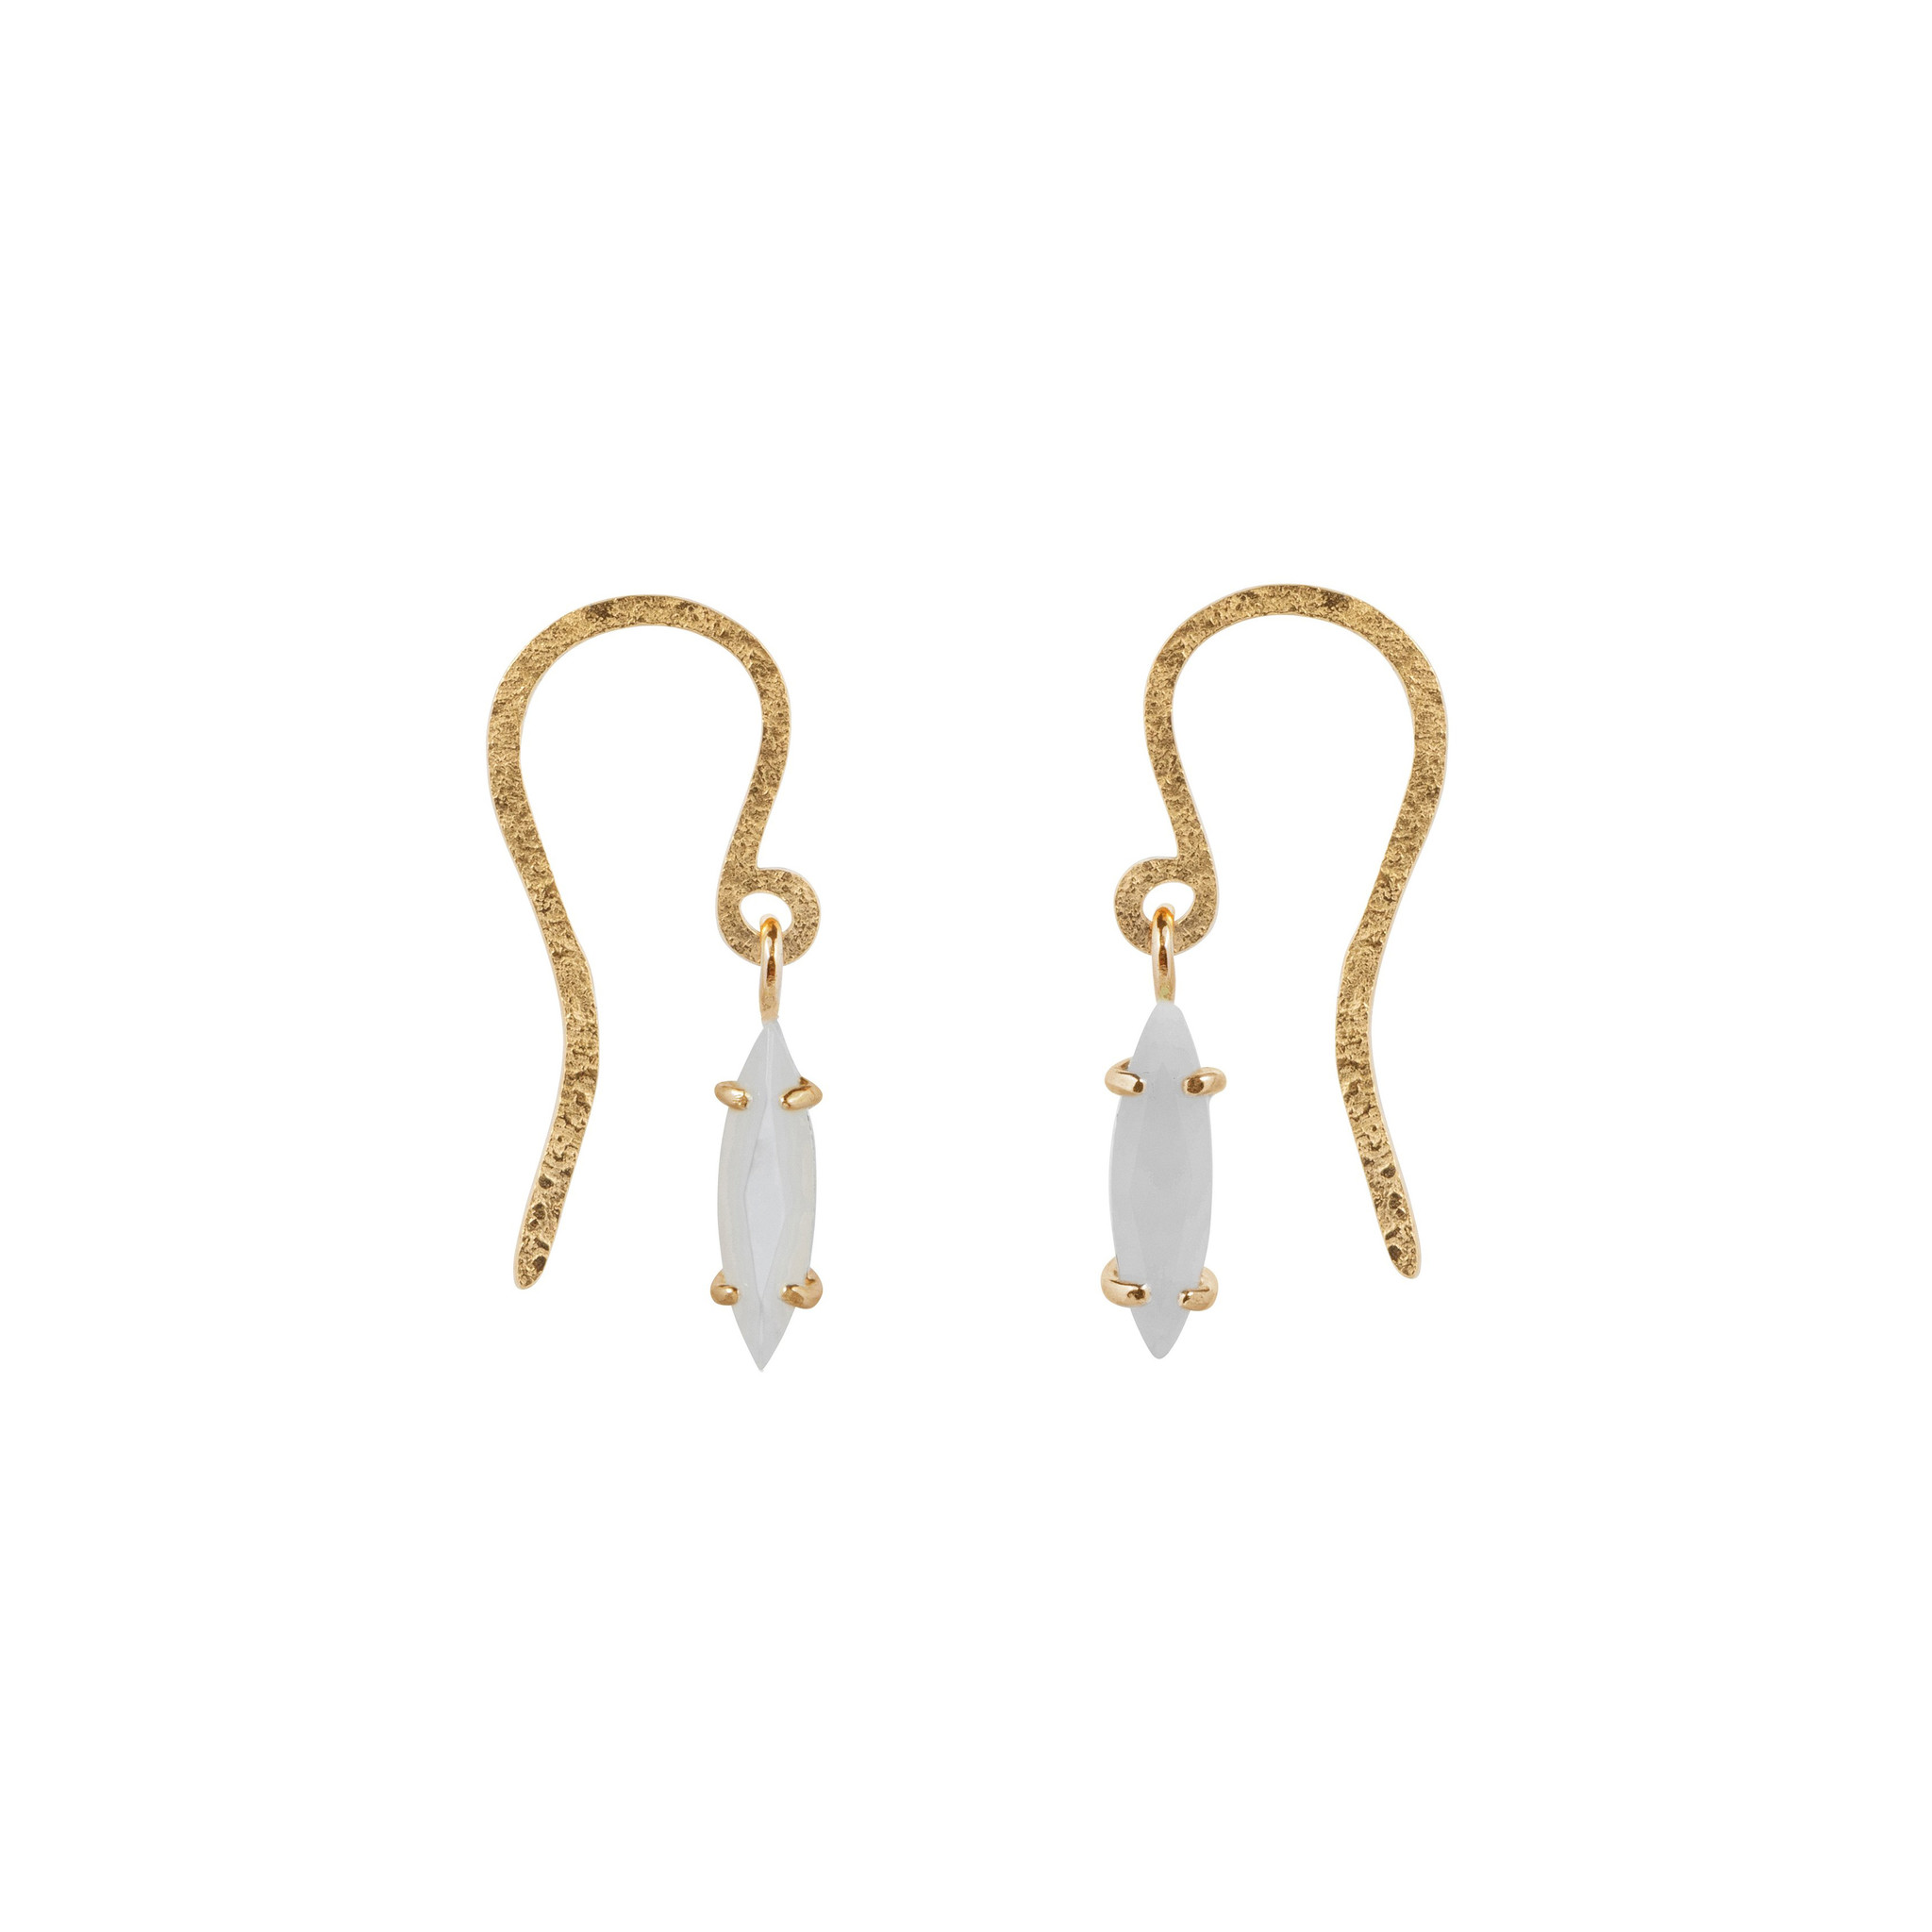 Stud earrings with hook and white mother of pearl